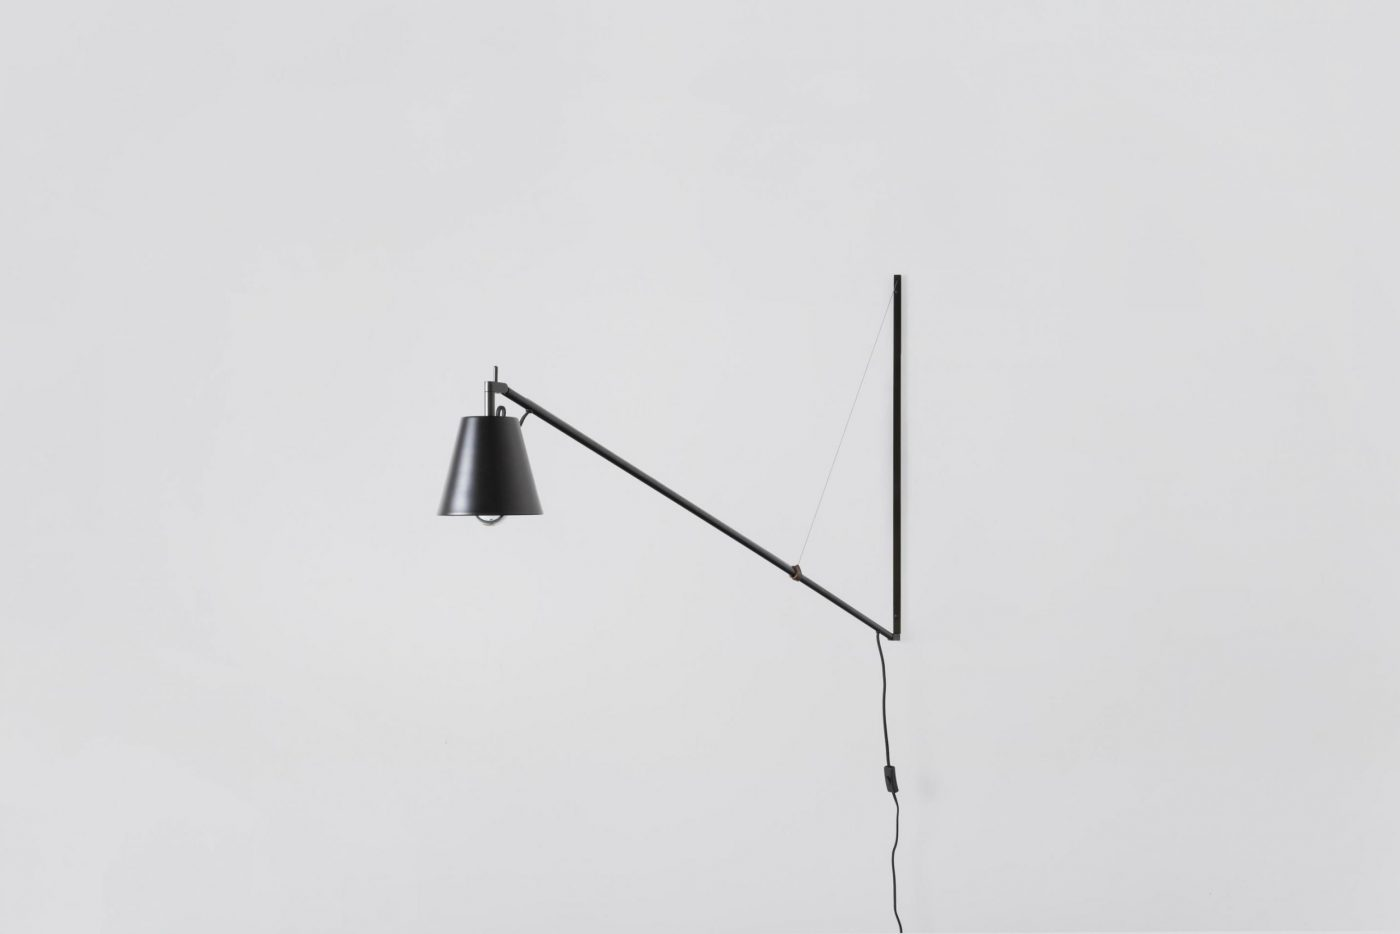 01 MYKILOS LEUCHTE LAMPE WAND STAHL STEEL BLACK SCHWARZ DESIGNER LAMP WALL WORK DESK KITCHEN KÜCHE scaled